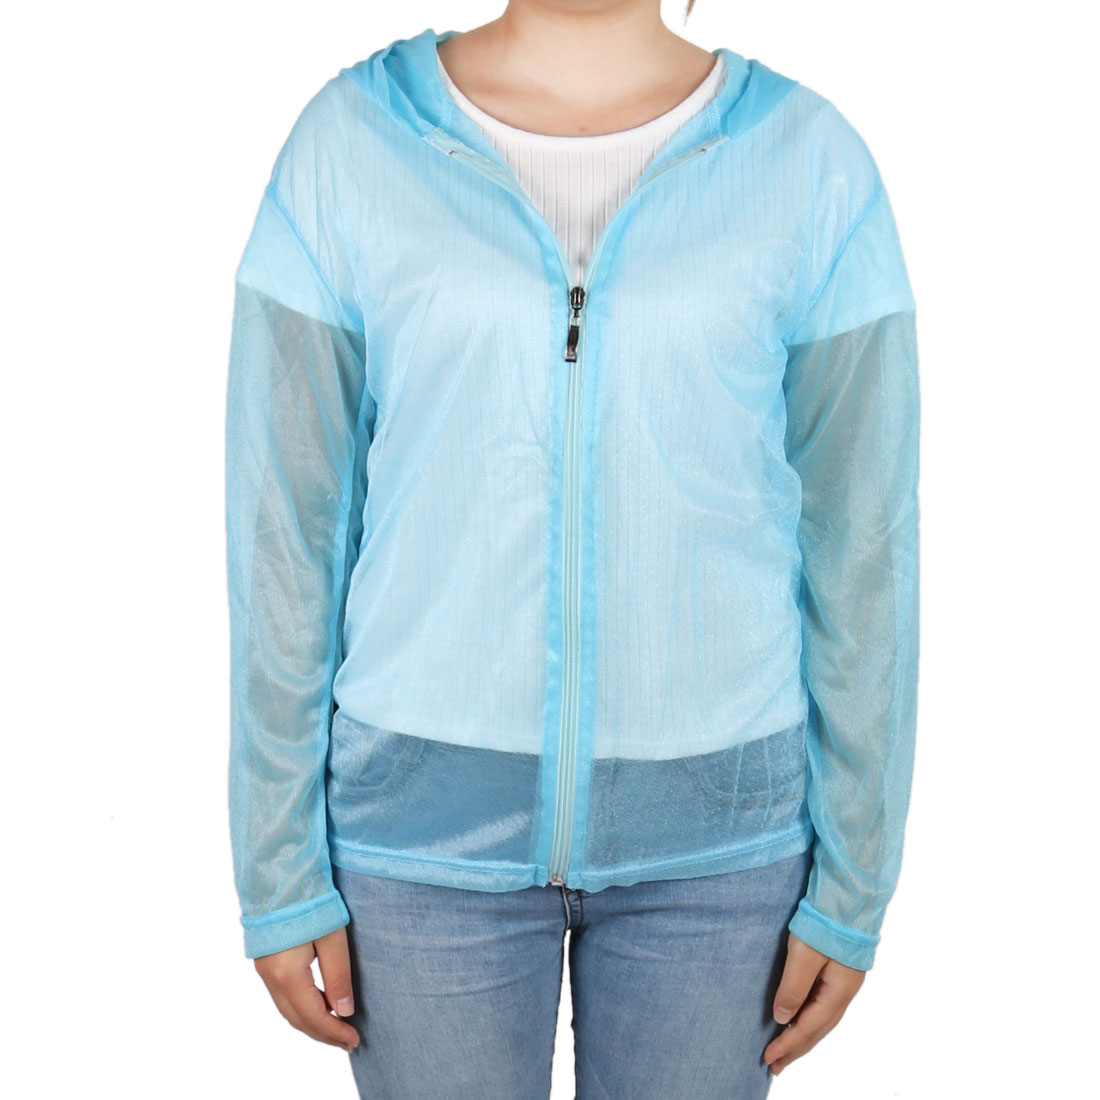 Outdoor Women Summer Sun UV Protection Transparent Clothing Hooded Jacket Blue